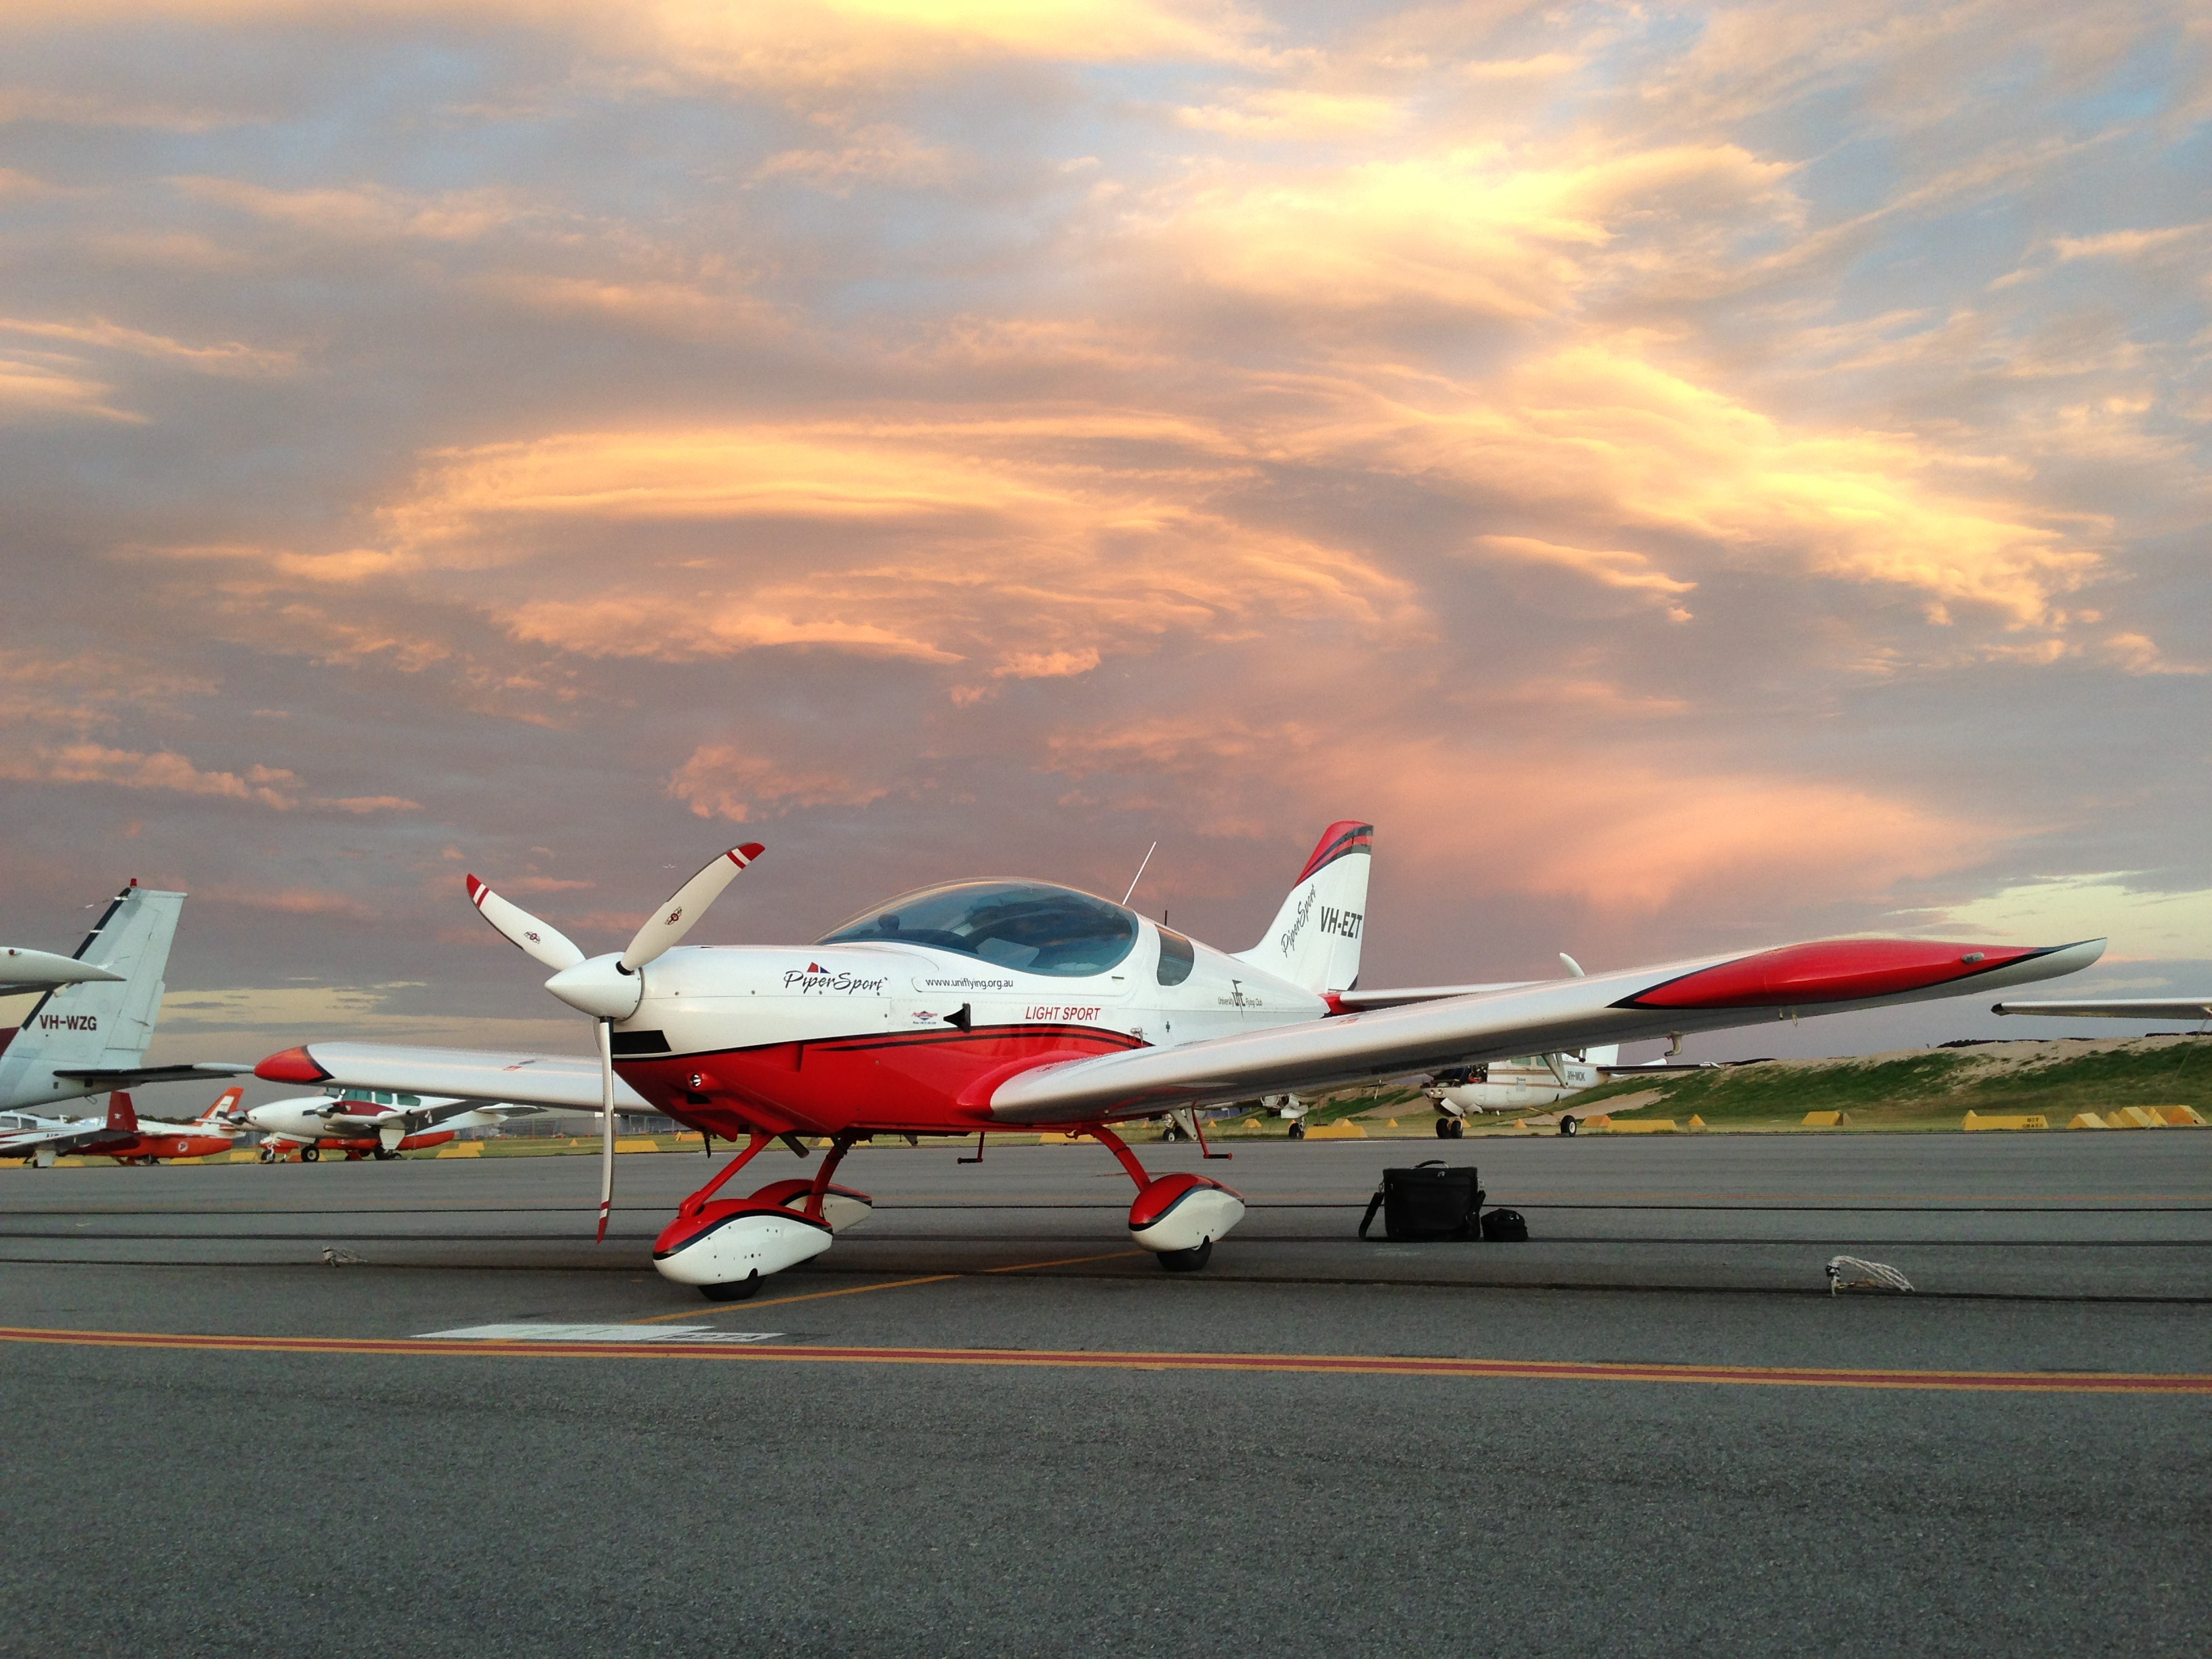 VH-EZT CSA pipersport sportscruiser learn to fly parked at jandakot near jandakot flight centre sunset